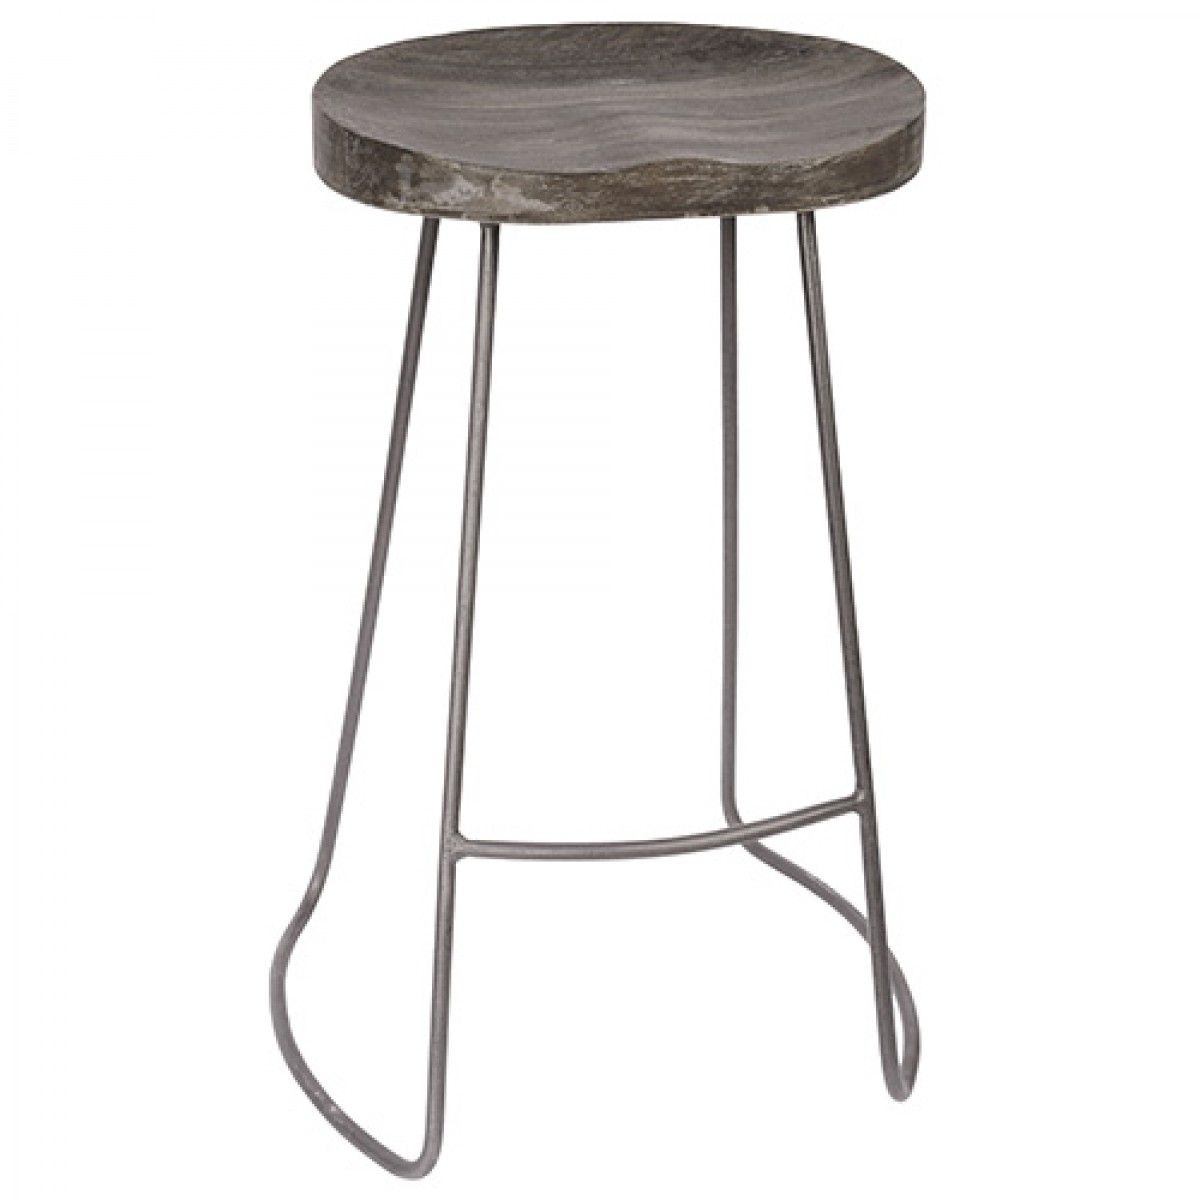 Amazing Keats Stool Kitchen Stool Dining Stools Stool Chair Gamerscity Chair Design For Home Gamerscityorg